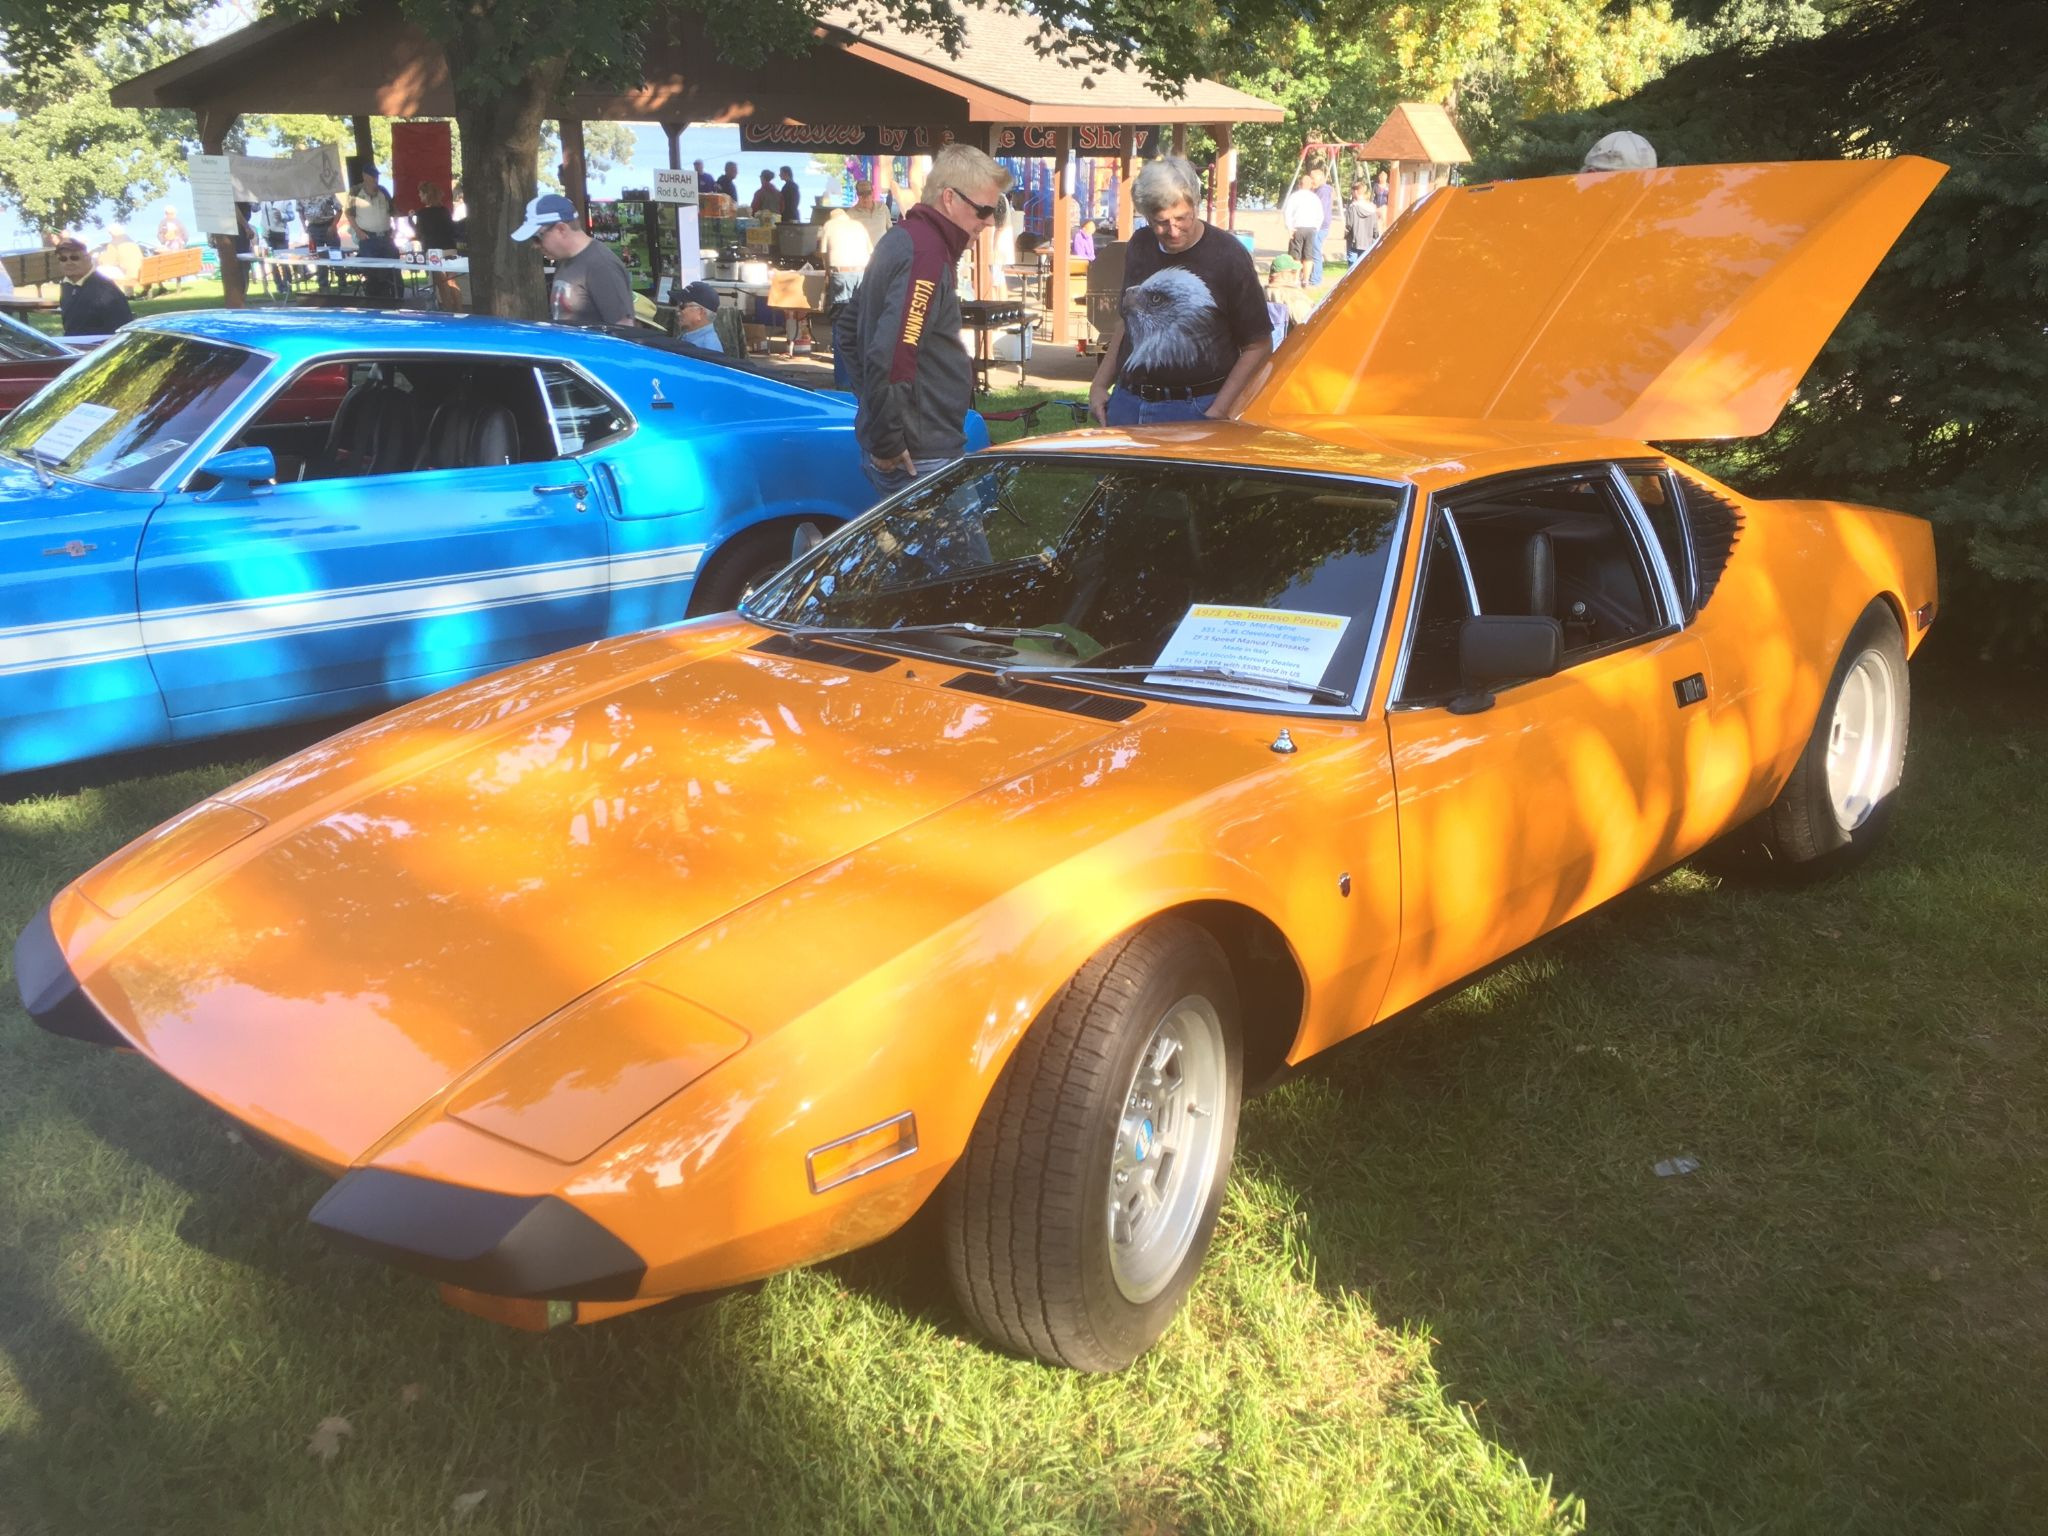 Ford Pantera For Sale >> 1973 Detomaso Pantera For Sale Autabuy Com